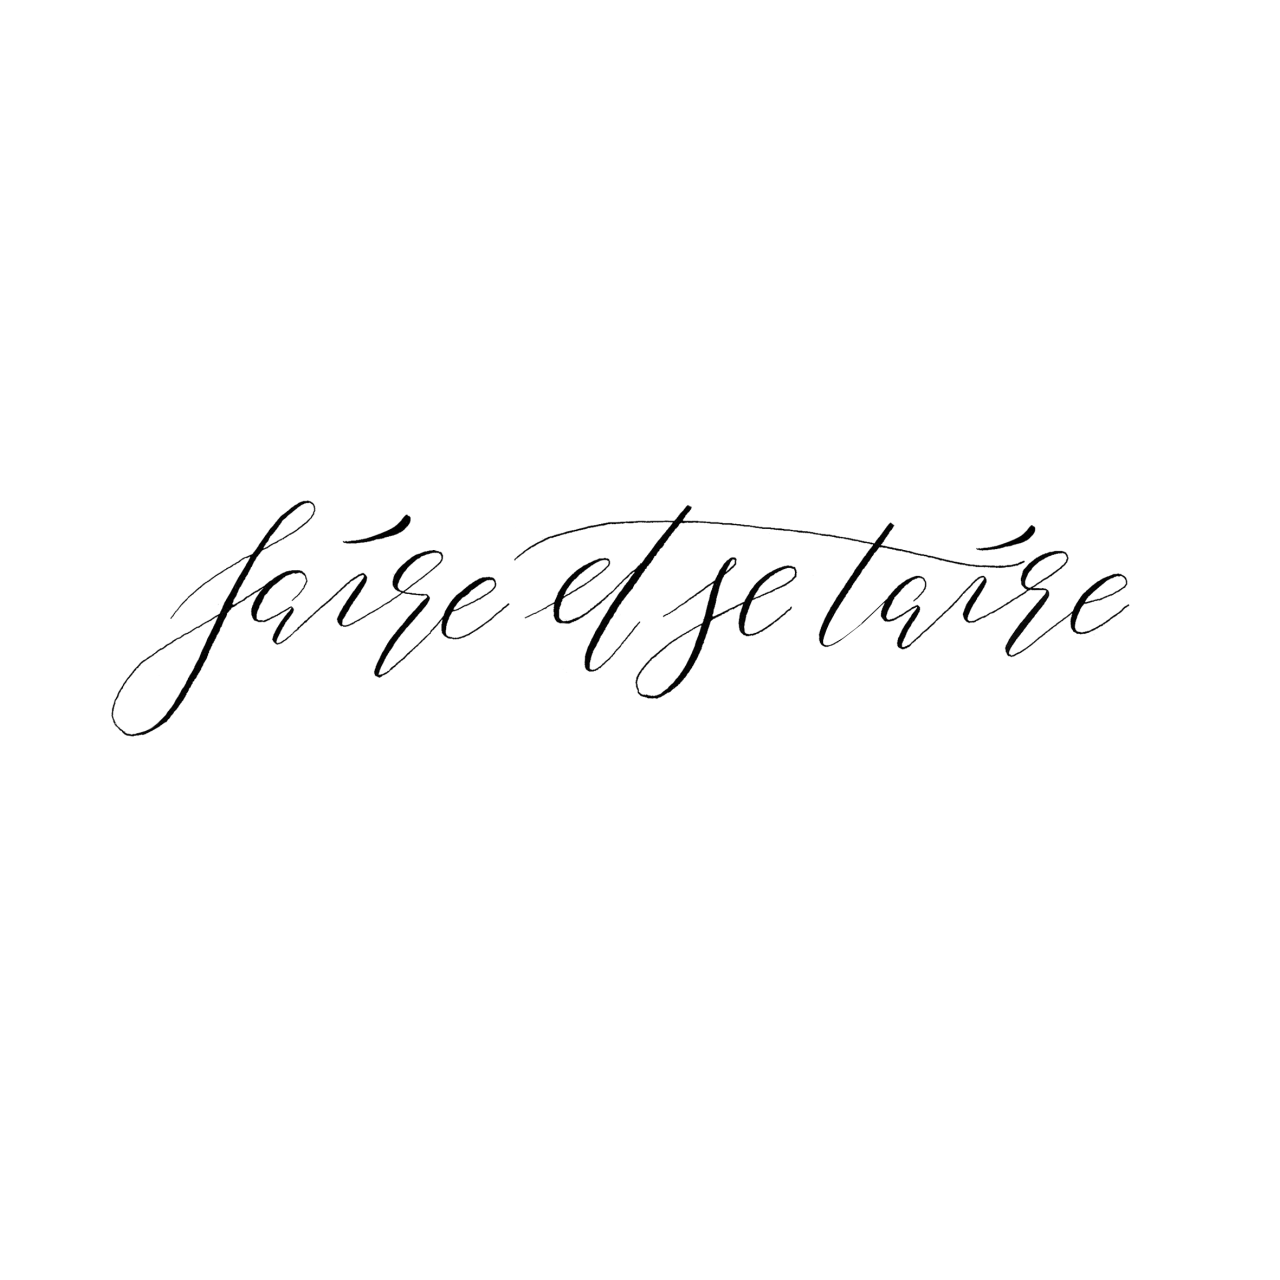 Calligraphy Quotes Tumblr Png 3 Png Image